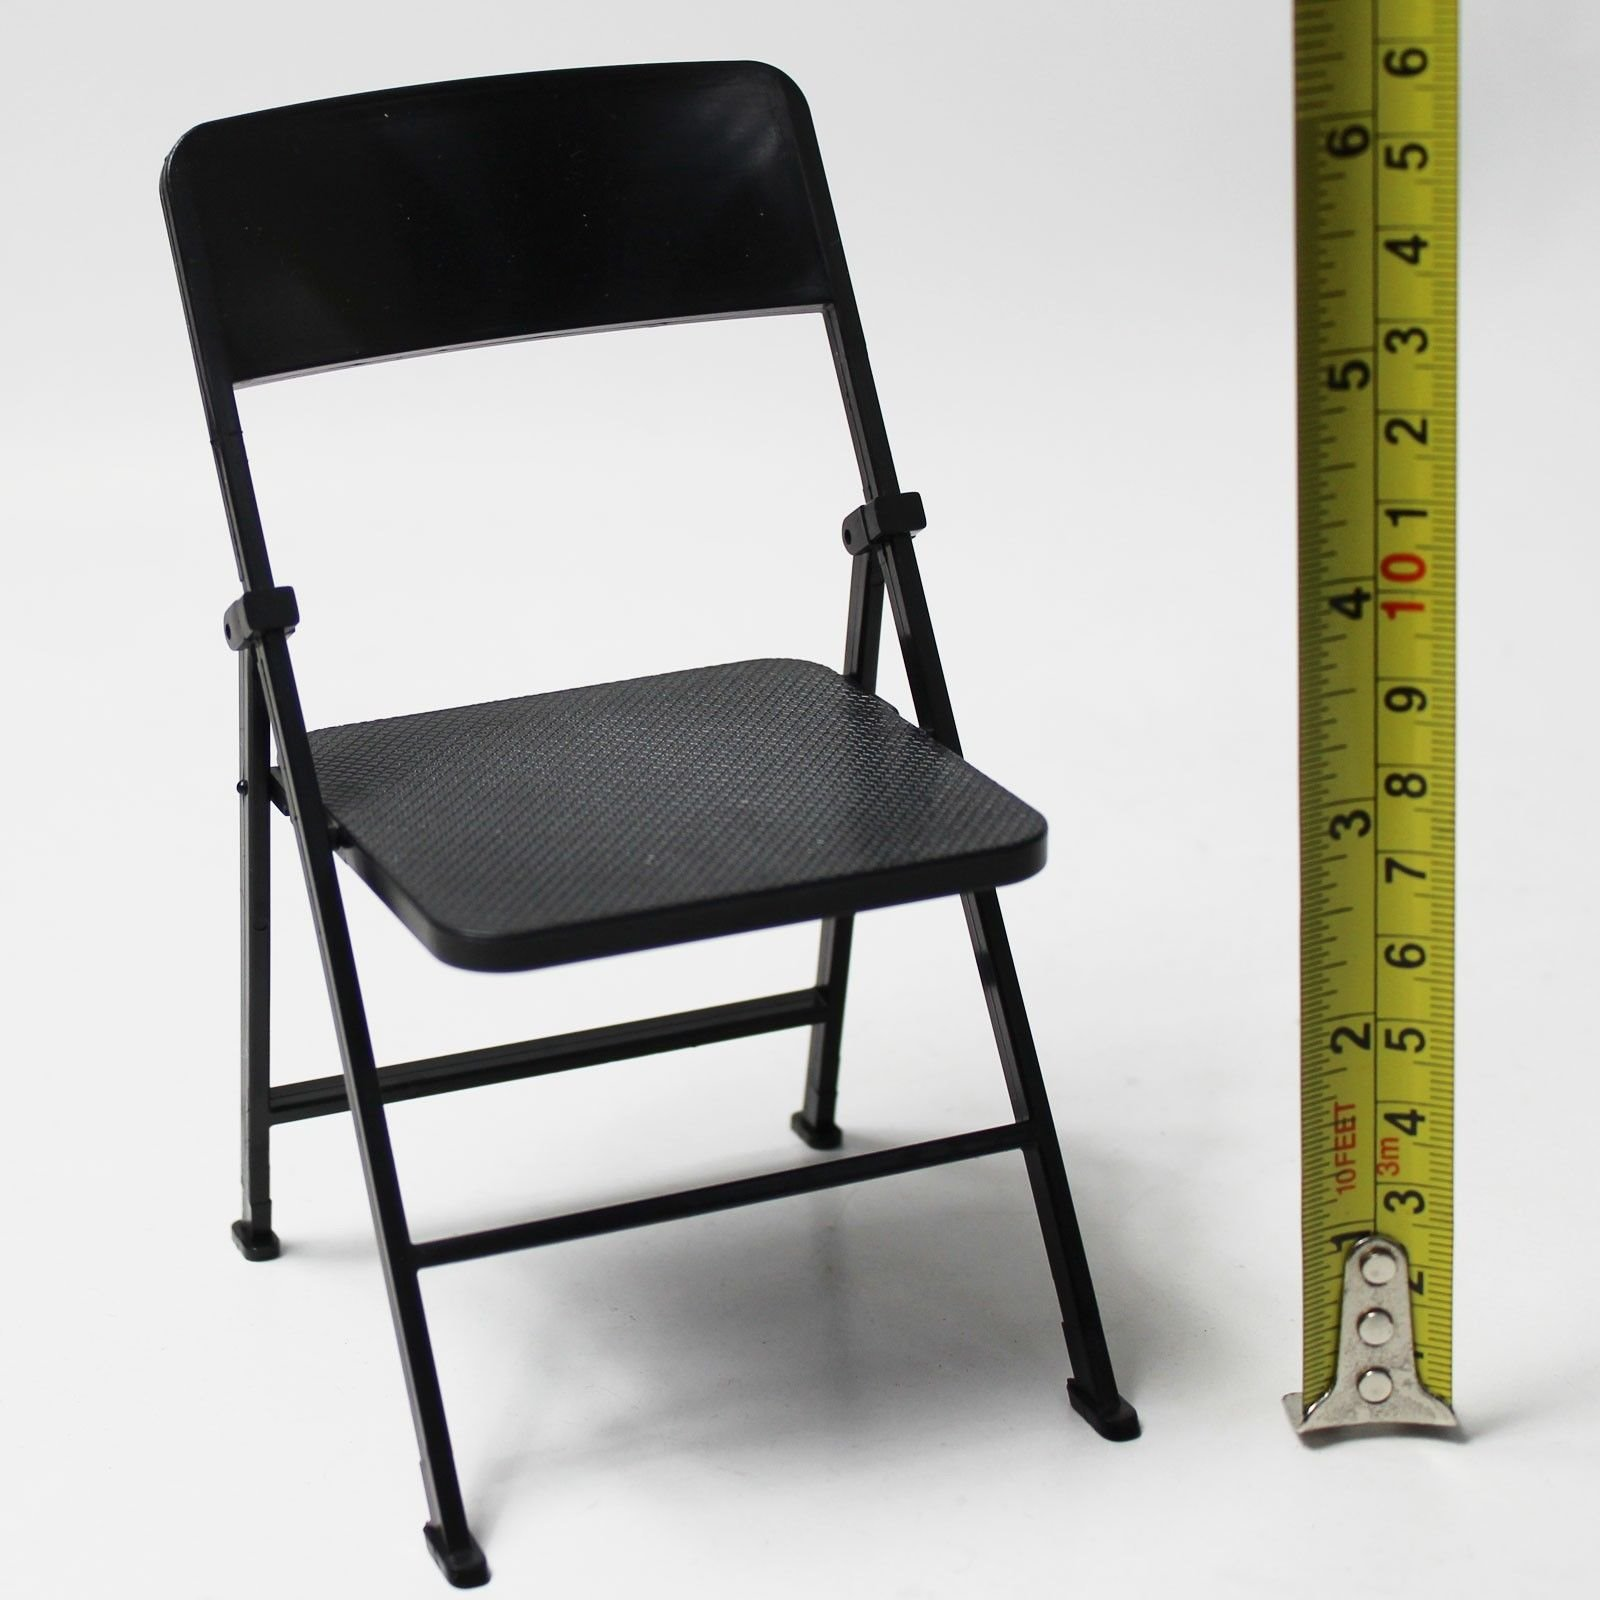 1 6 scale Folding Chair for the Ultimate Sol r Bbi Dragon 12